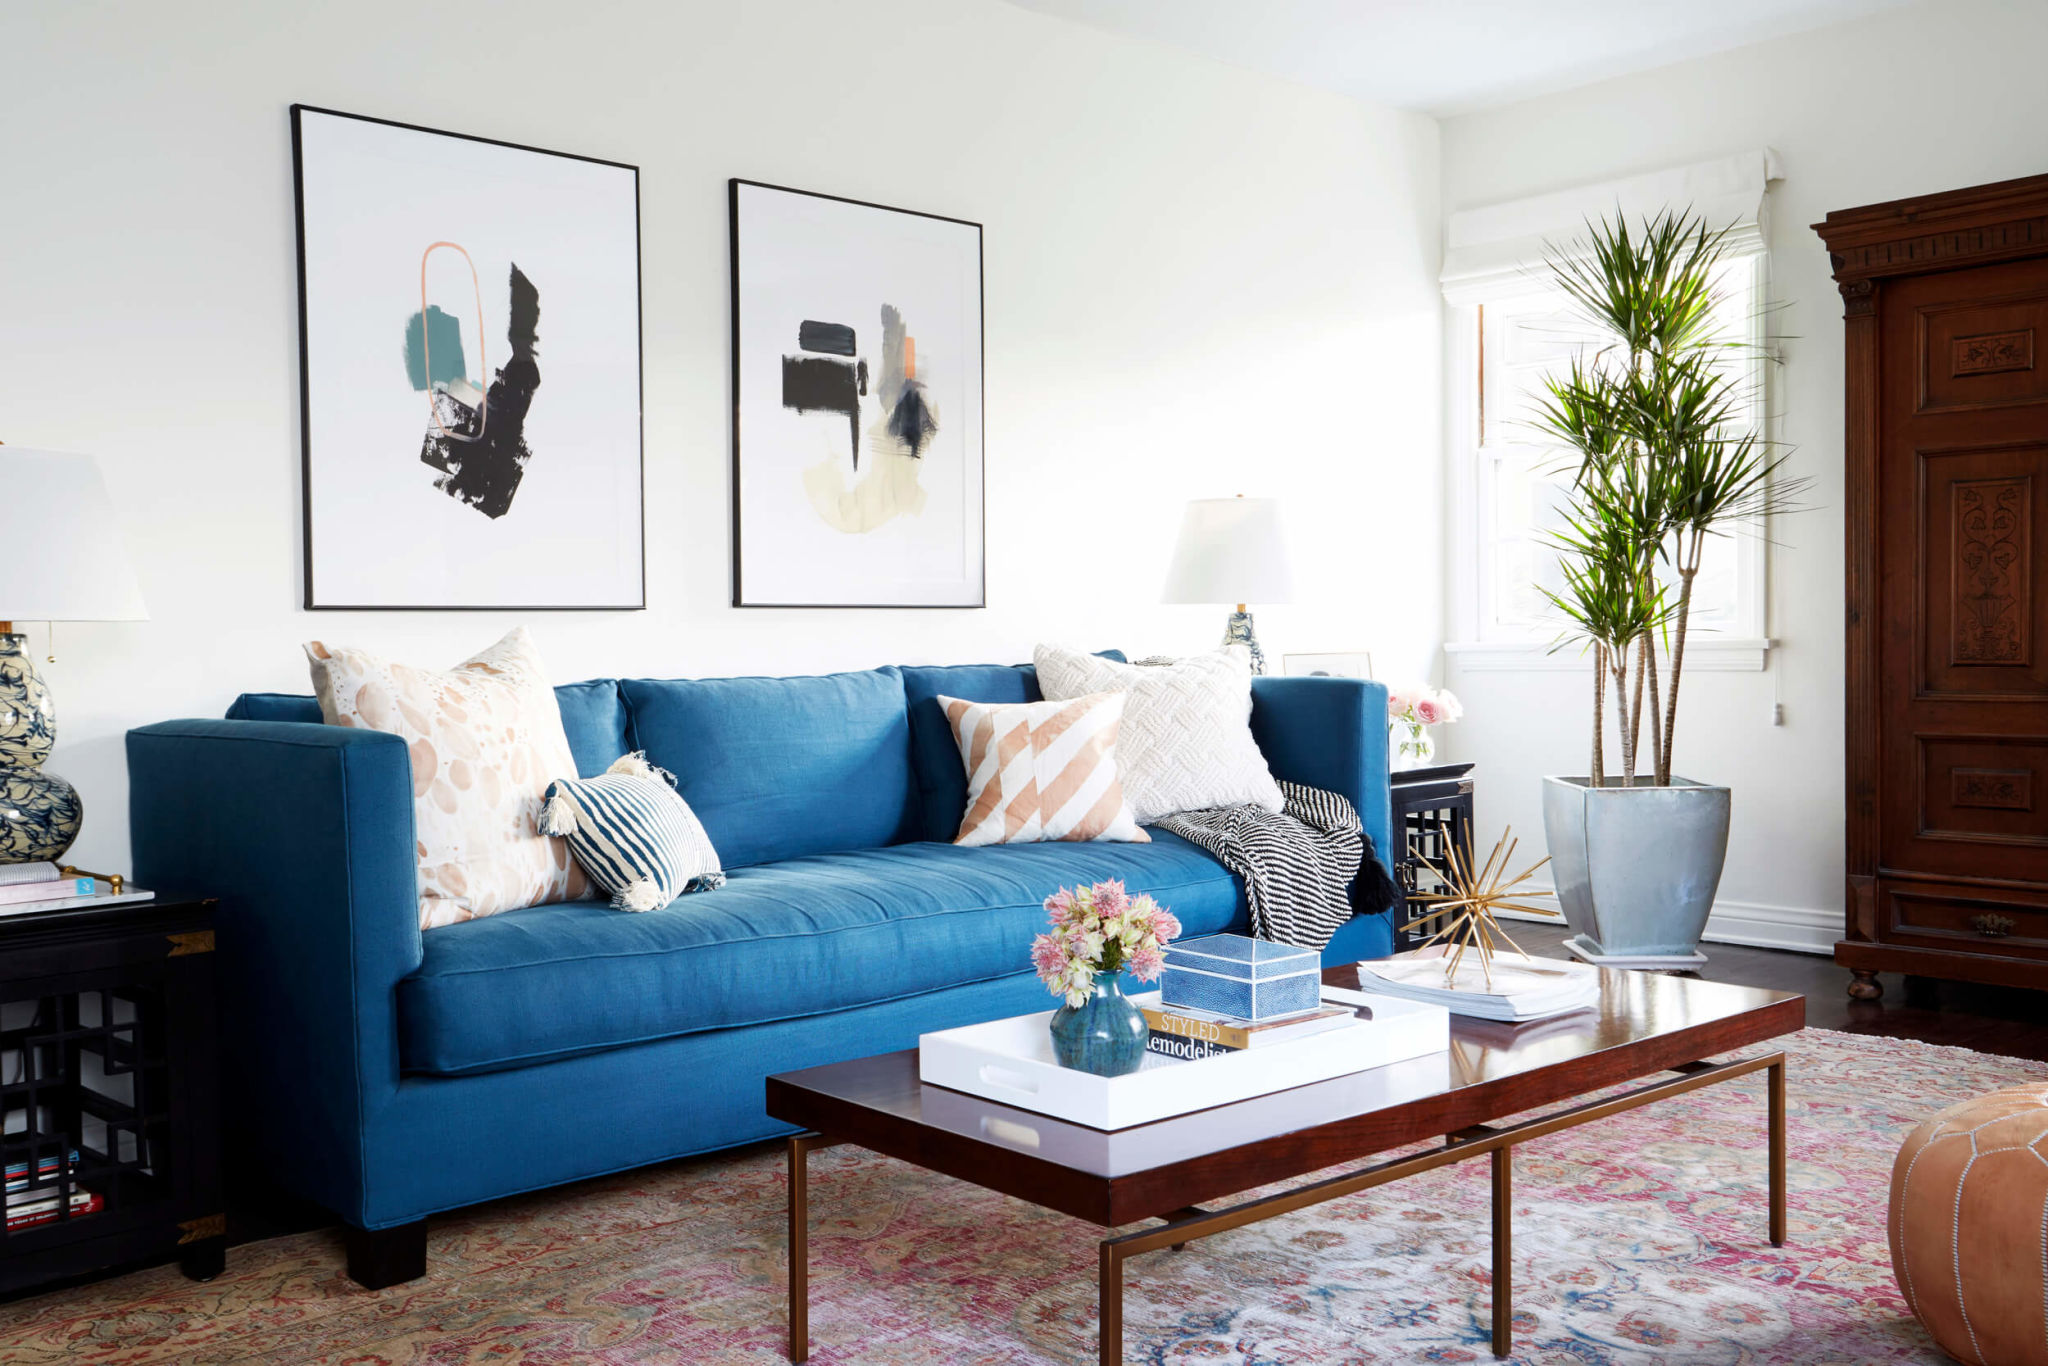 Blue statement sofa against neutrals